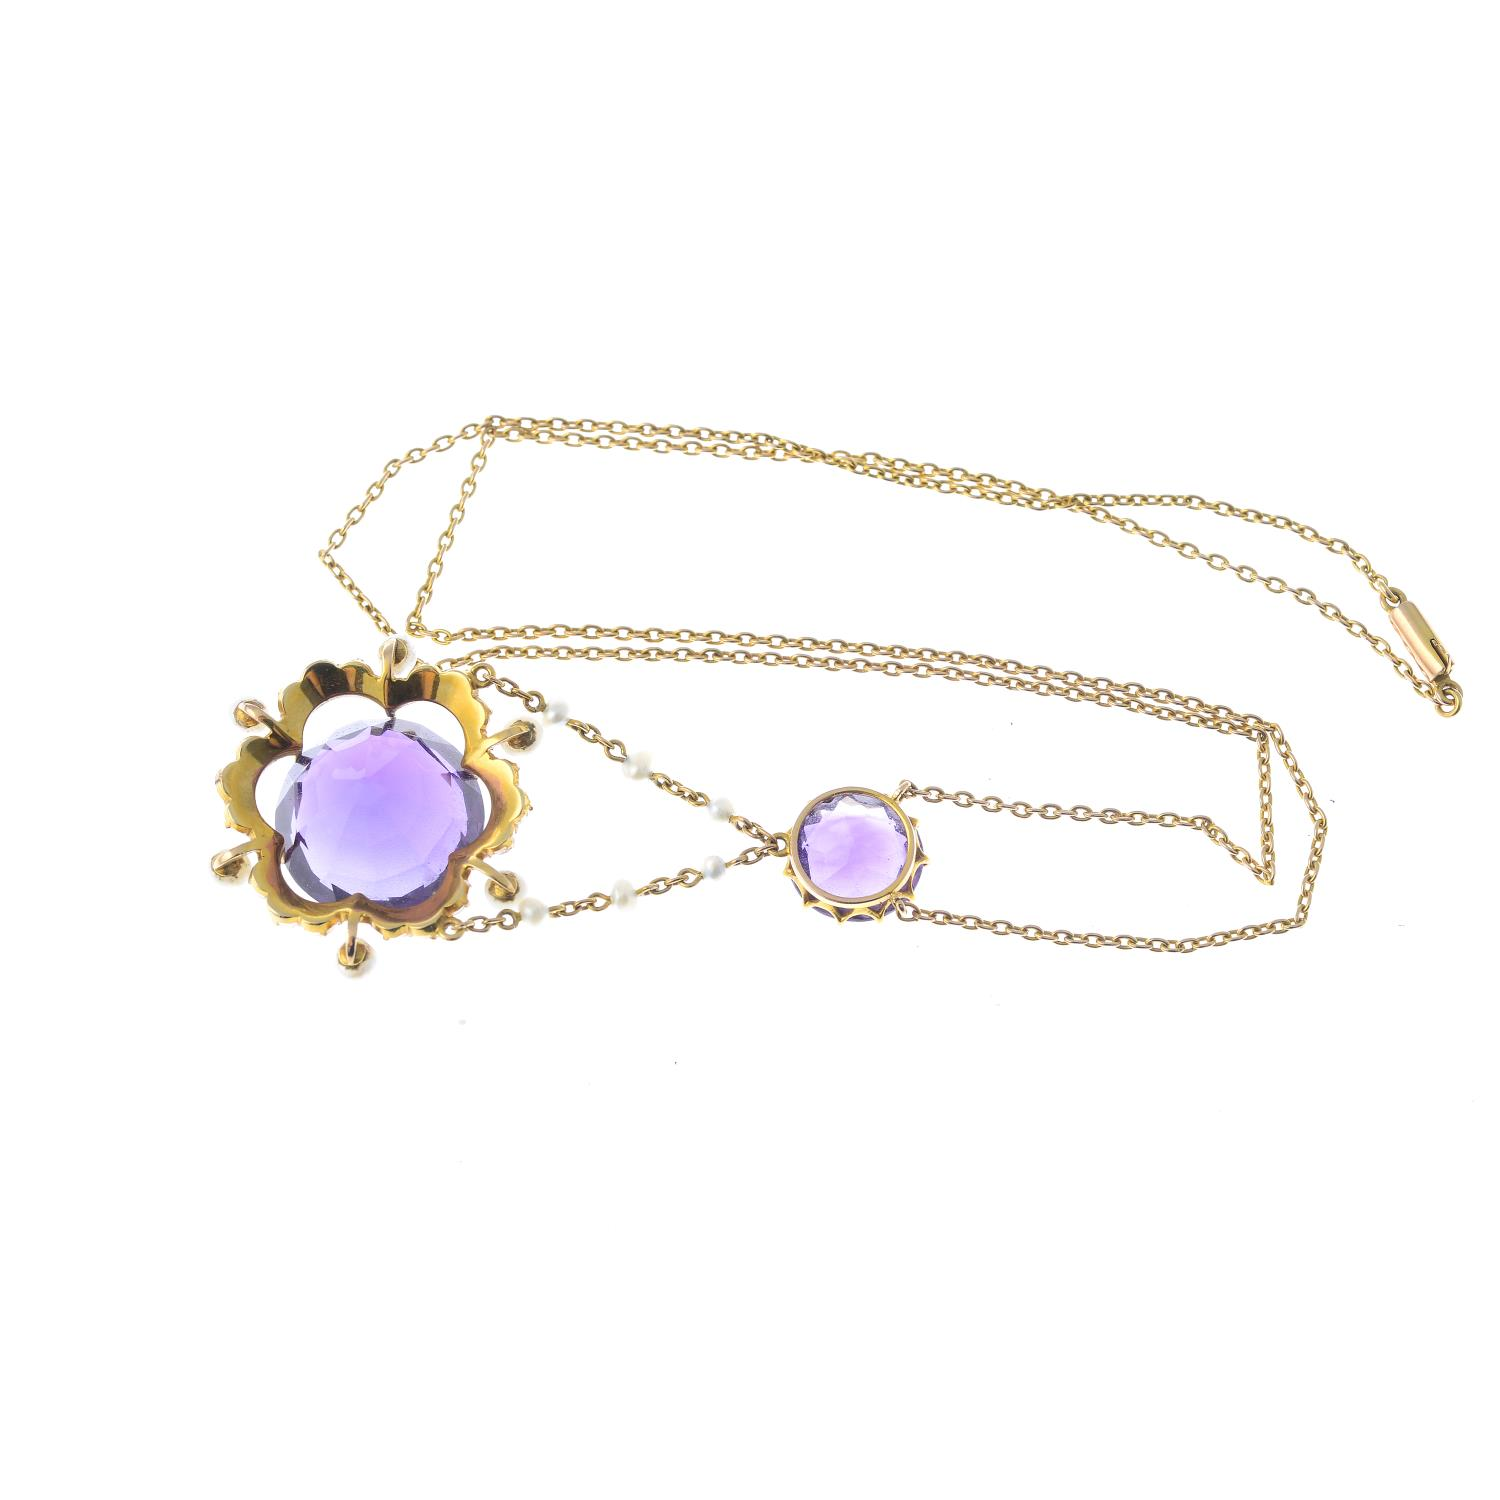 Lot 28 - An early 20th century 15ct gold amethyst and seed pearl necklace.